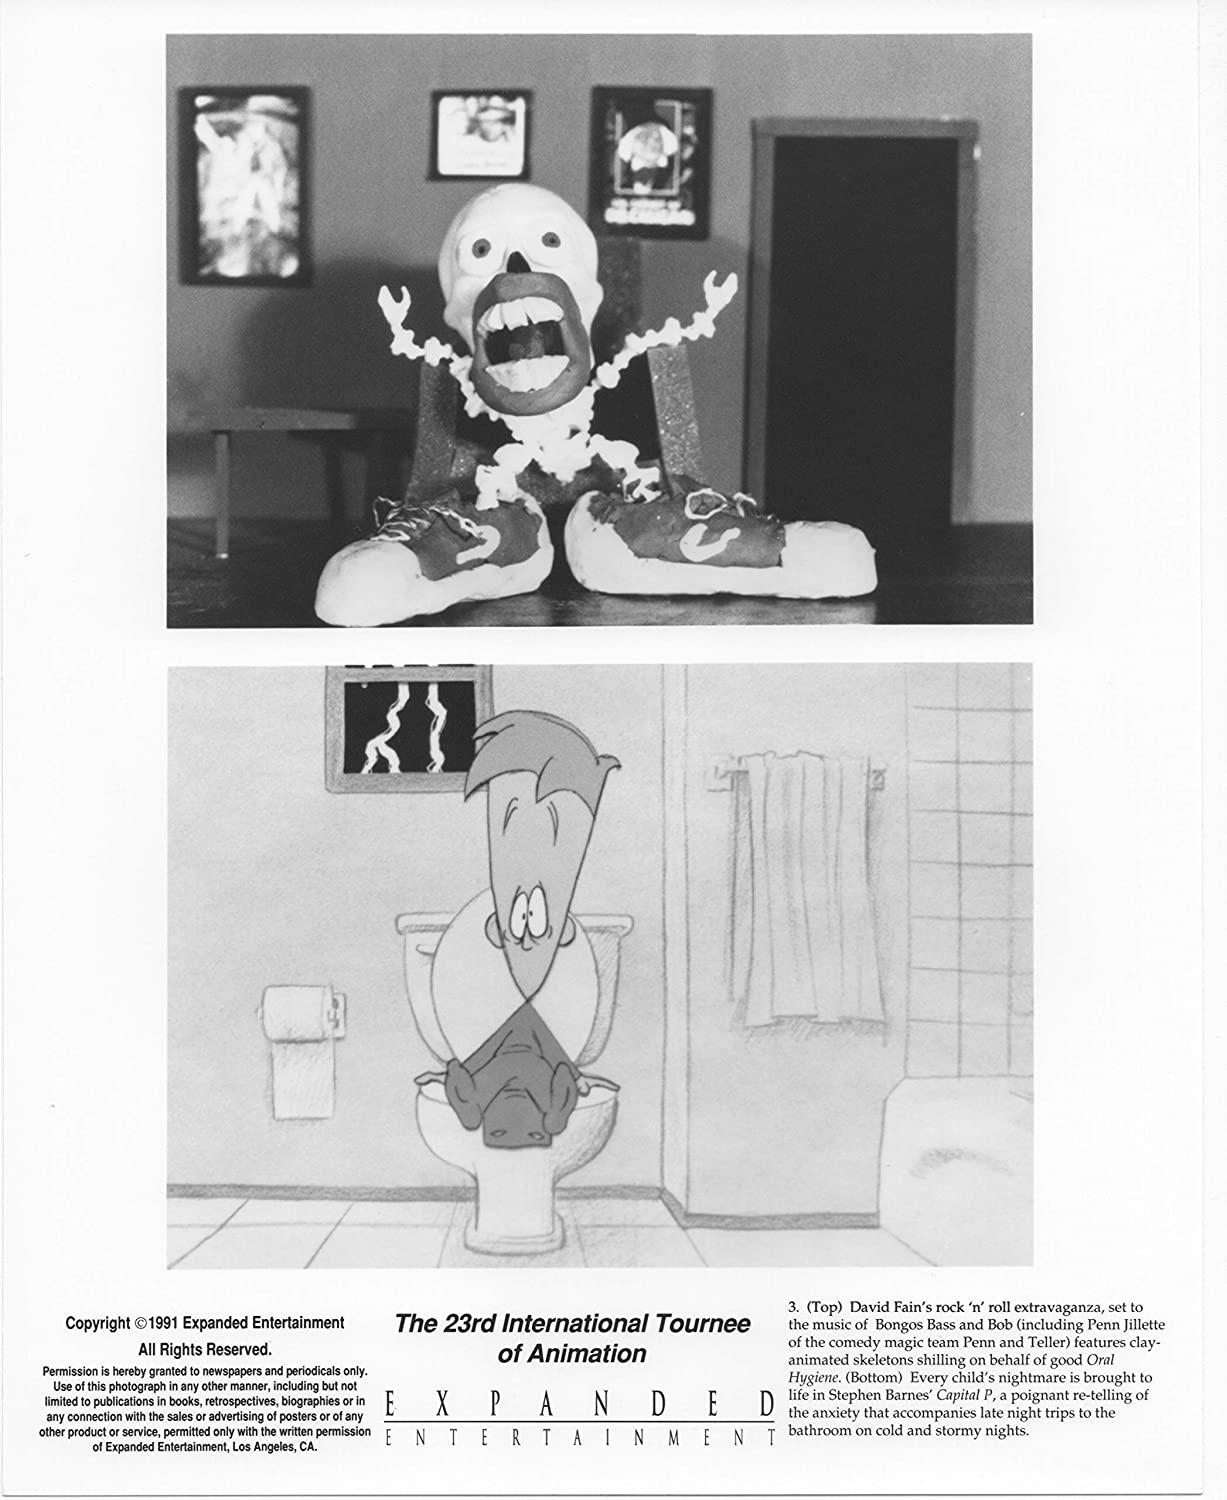 23rd International Tournee of Animation Original Studio Lobby Card Publicity Still Featuring the voice talent of Penn and Teller.